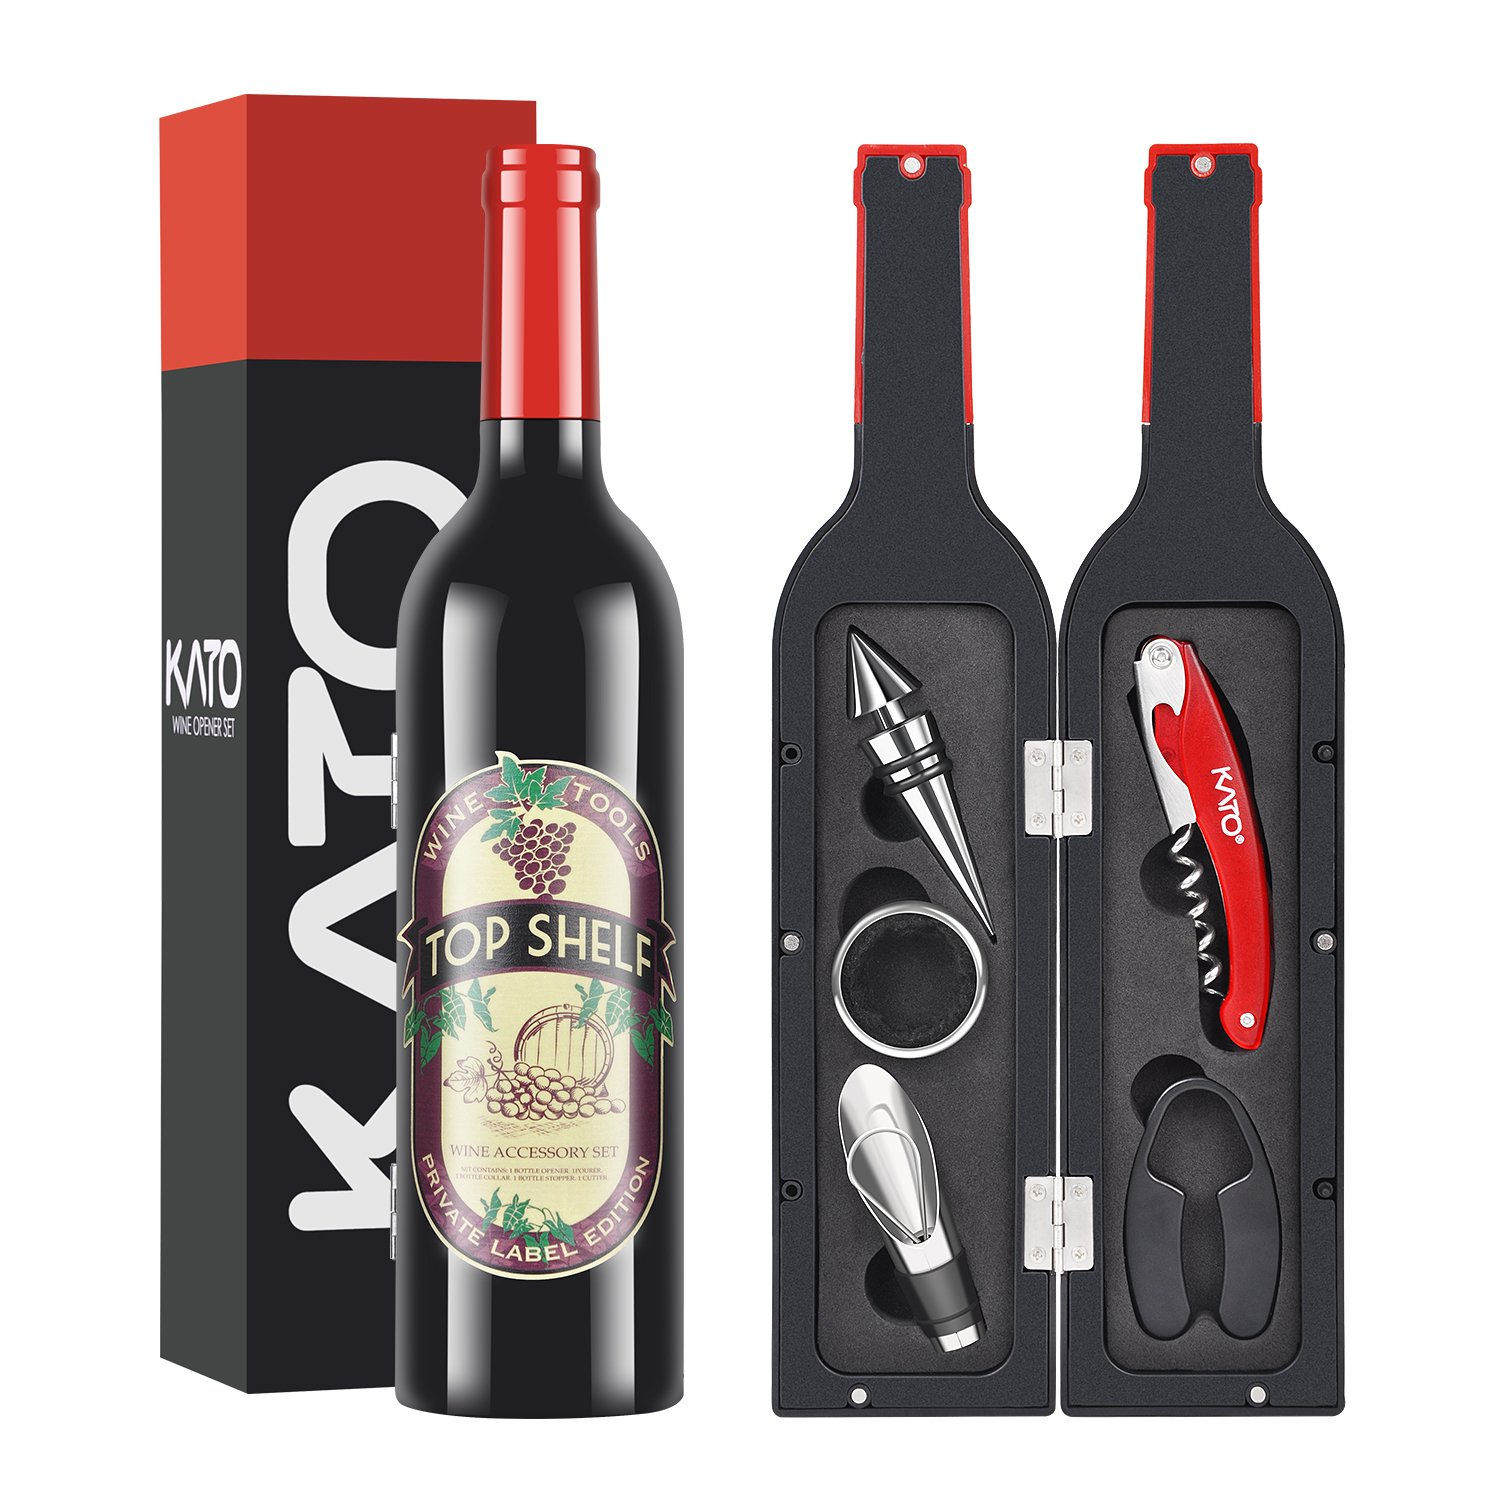 Kato Wine Accessories Gift Set - Wine Bottle Corkscrew Opener Kit, Stopper, Pourer, Foil Cutter, Drip Ring with Free Drink Stickers, Best Gift for Father's Day and Wedding, Red